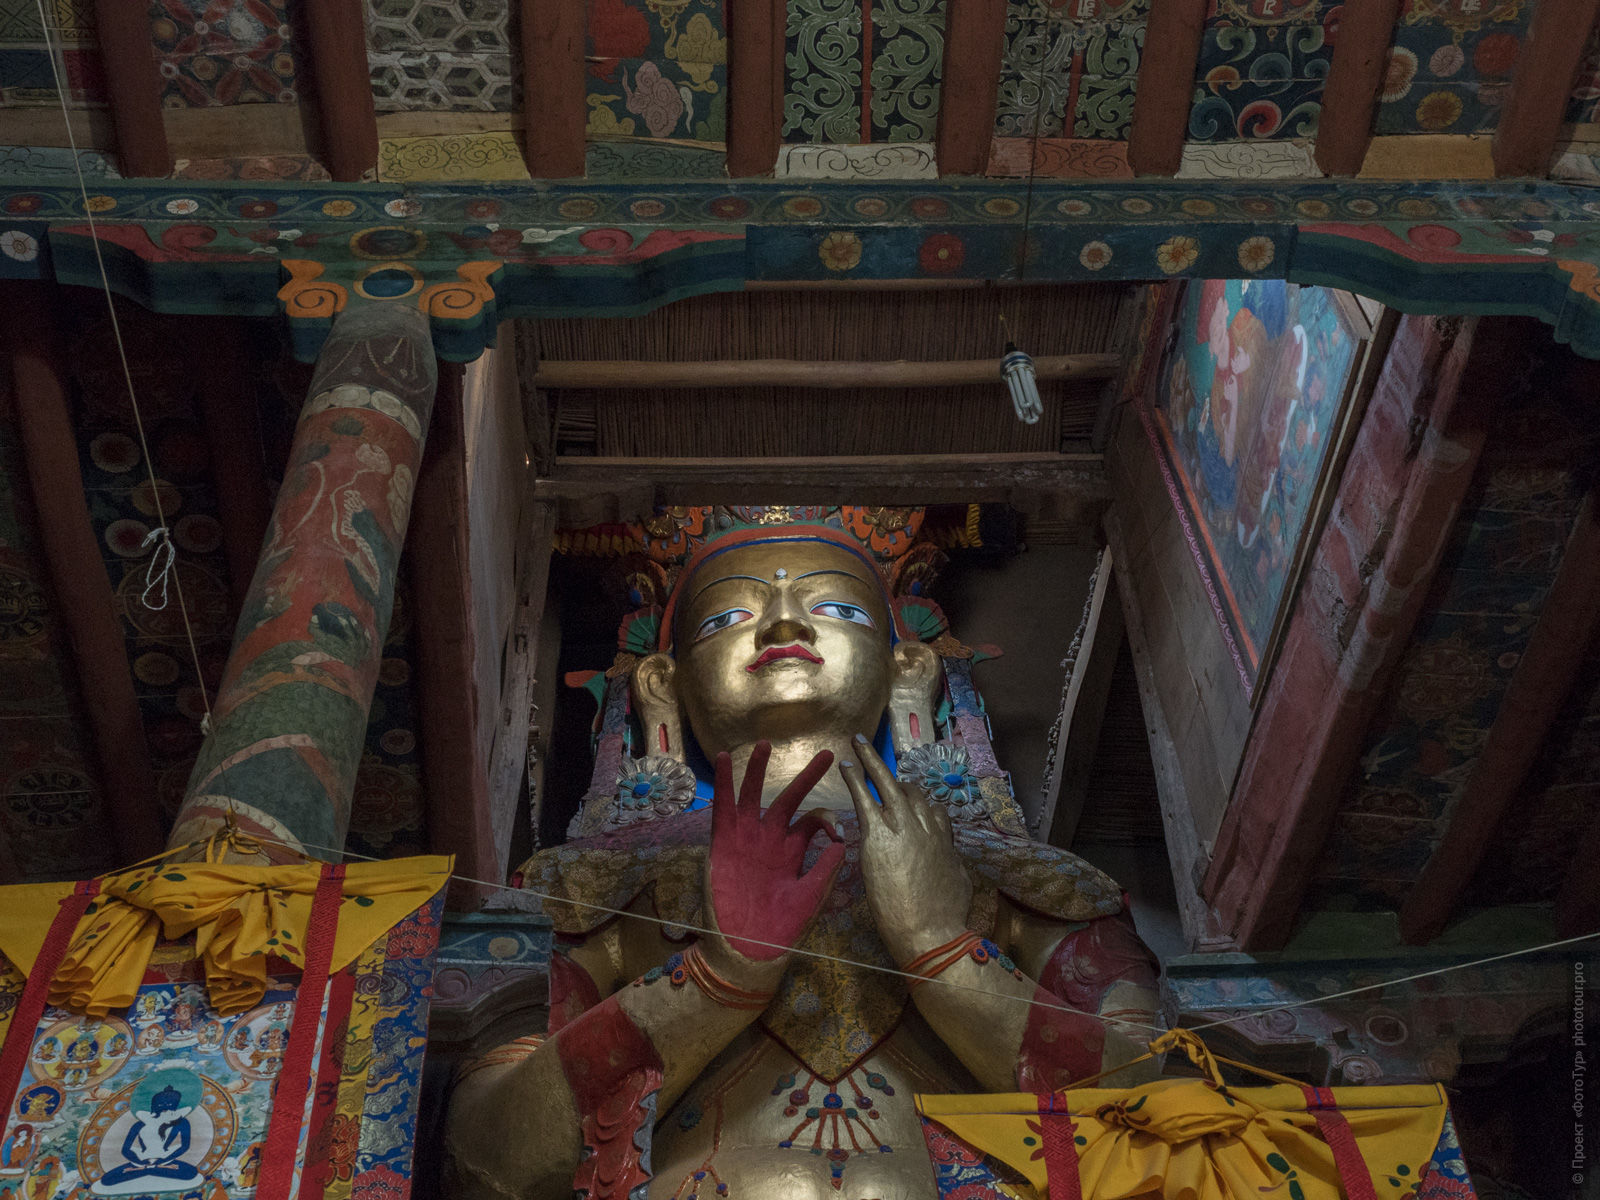 Buddha Matreya in the monastery of Basgo Gonpa. Expedition Tibet Lake-2: Pangong, Tso Moriri, Tso Kar, Tso Startsapak, Leh-Manali highway.